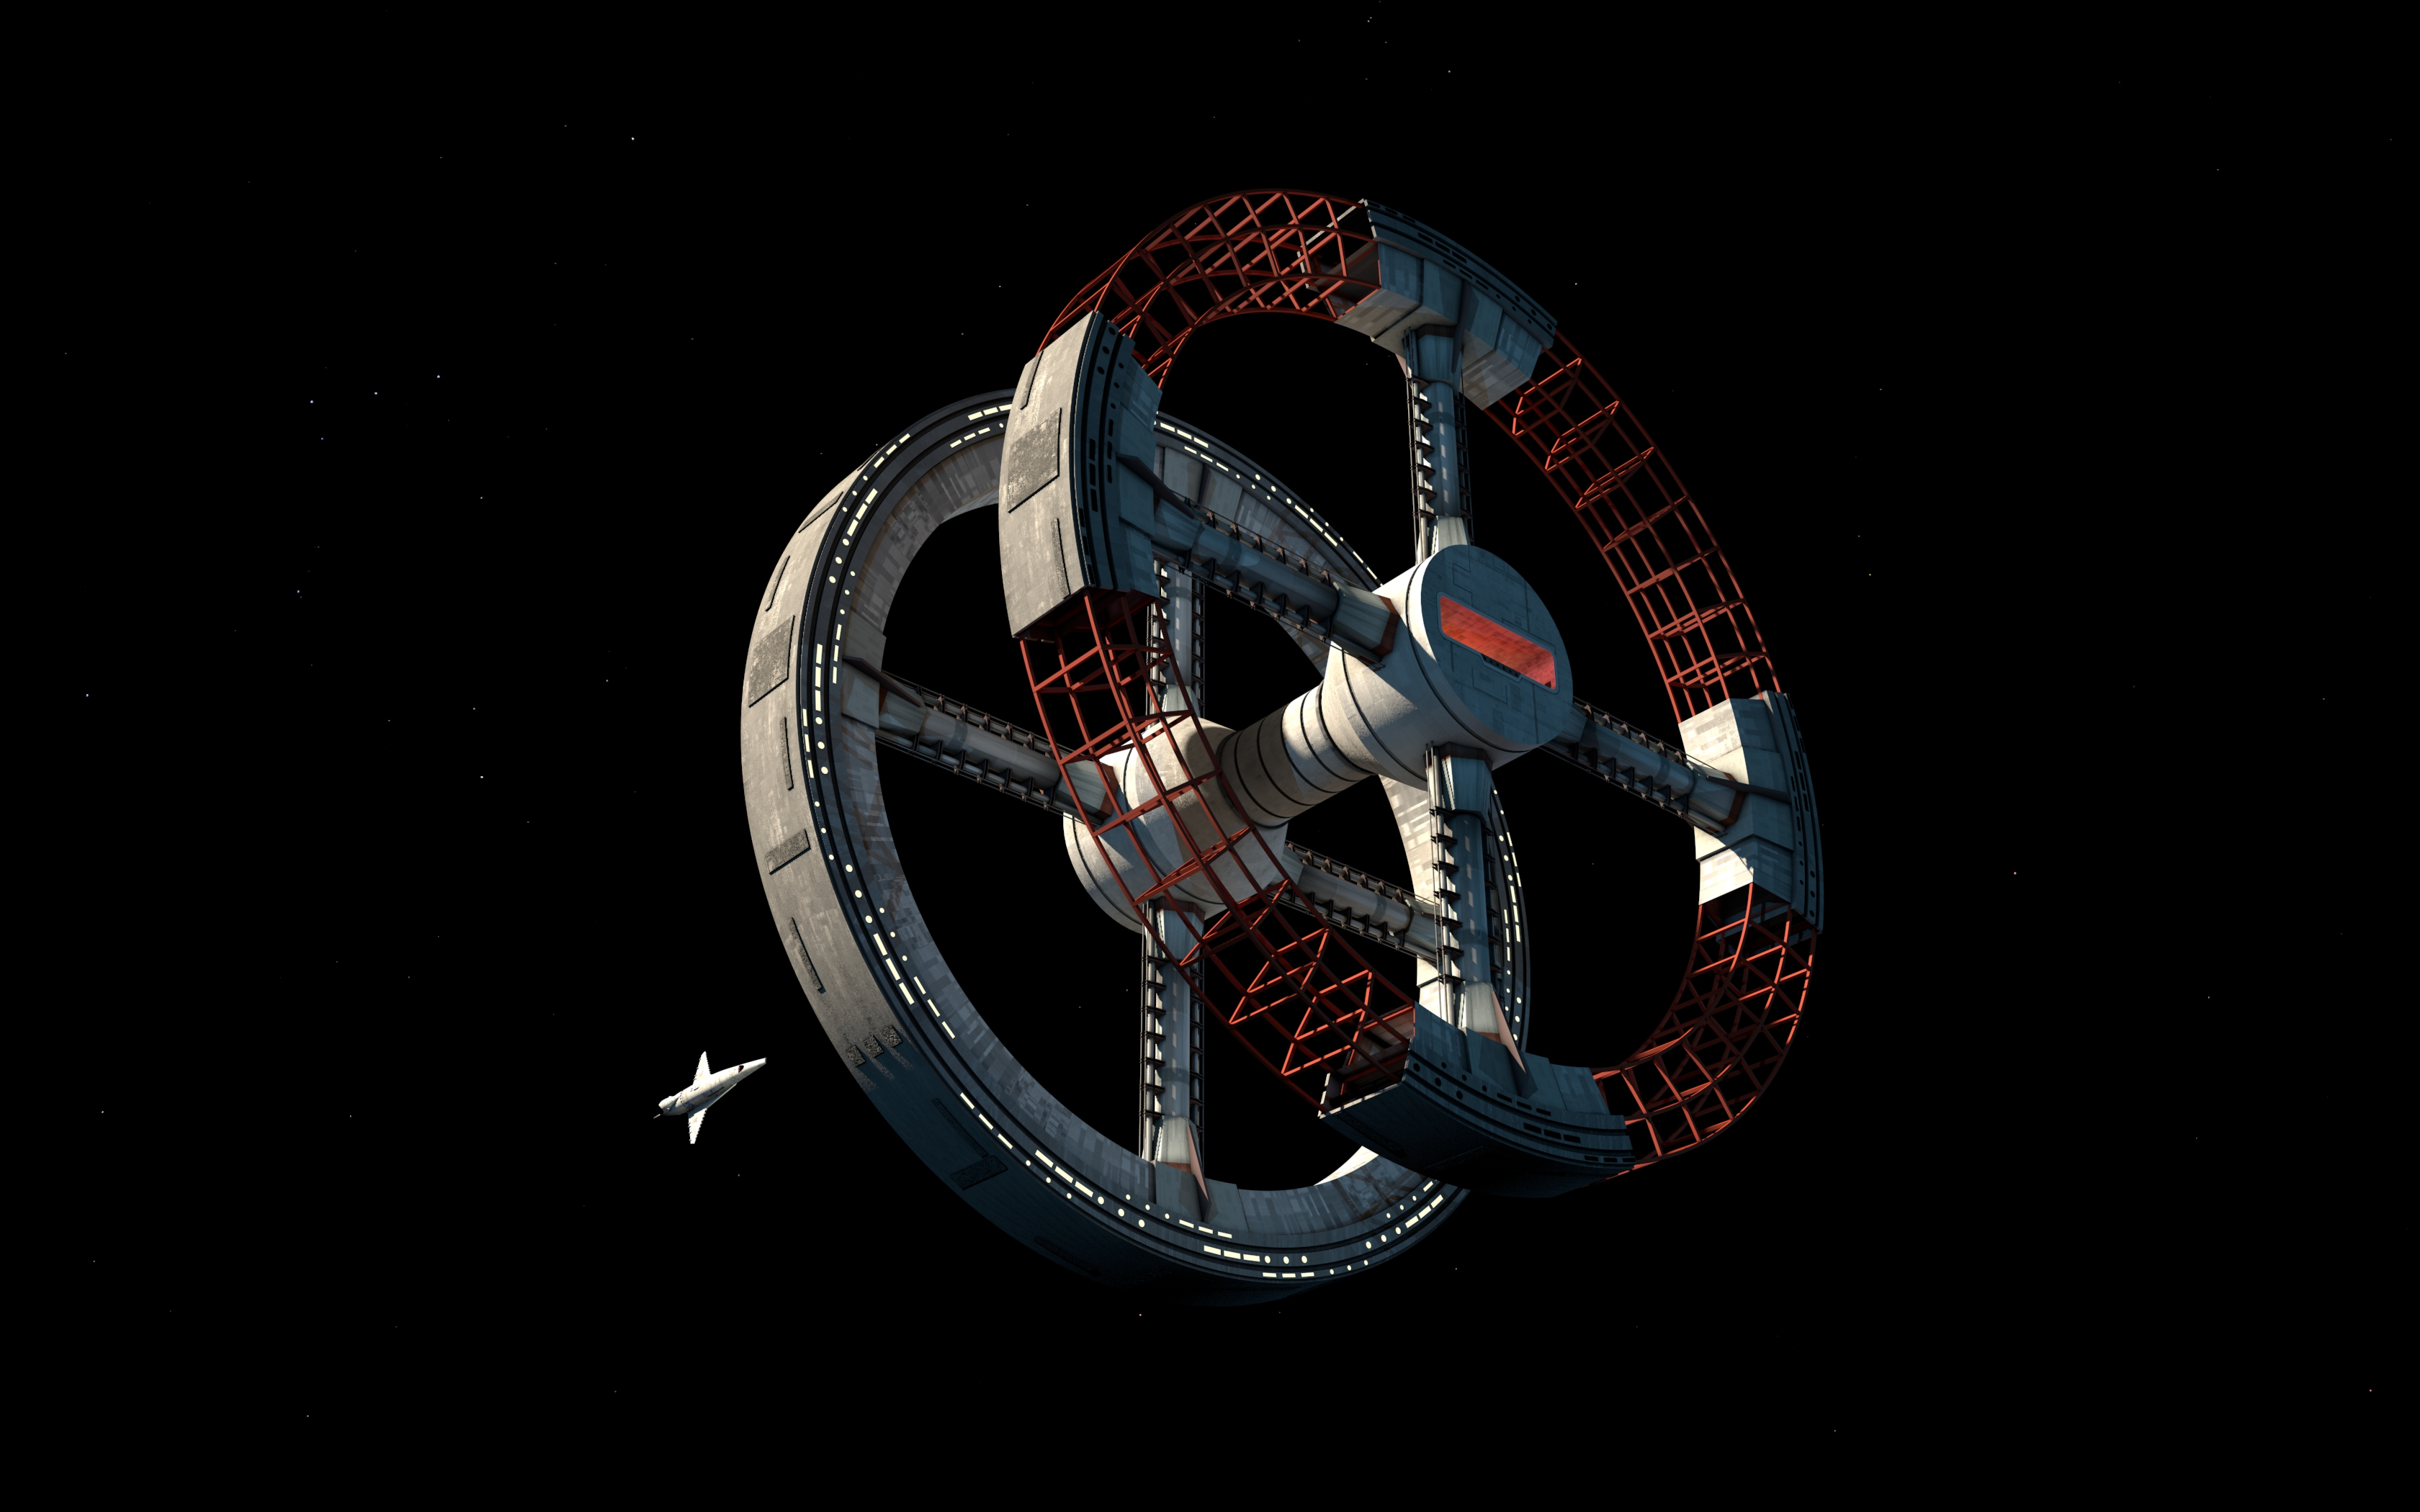 Space Odyssey Spacecraft 2001 a Space Odyssey by m